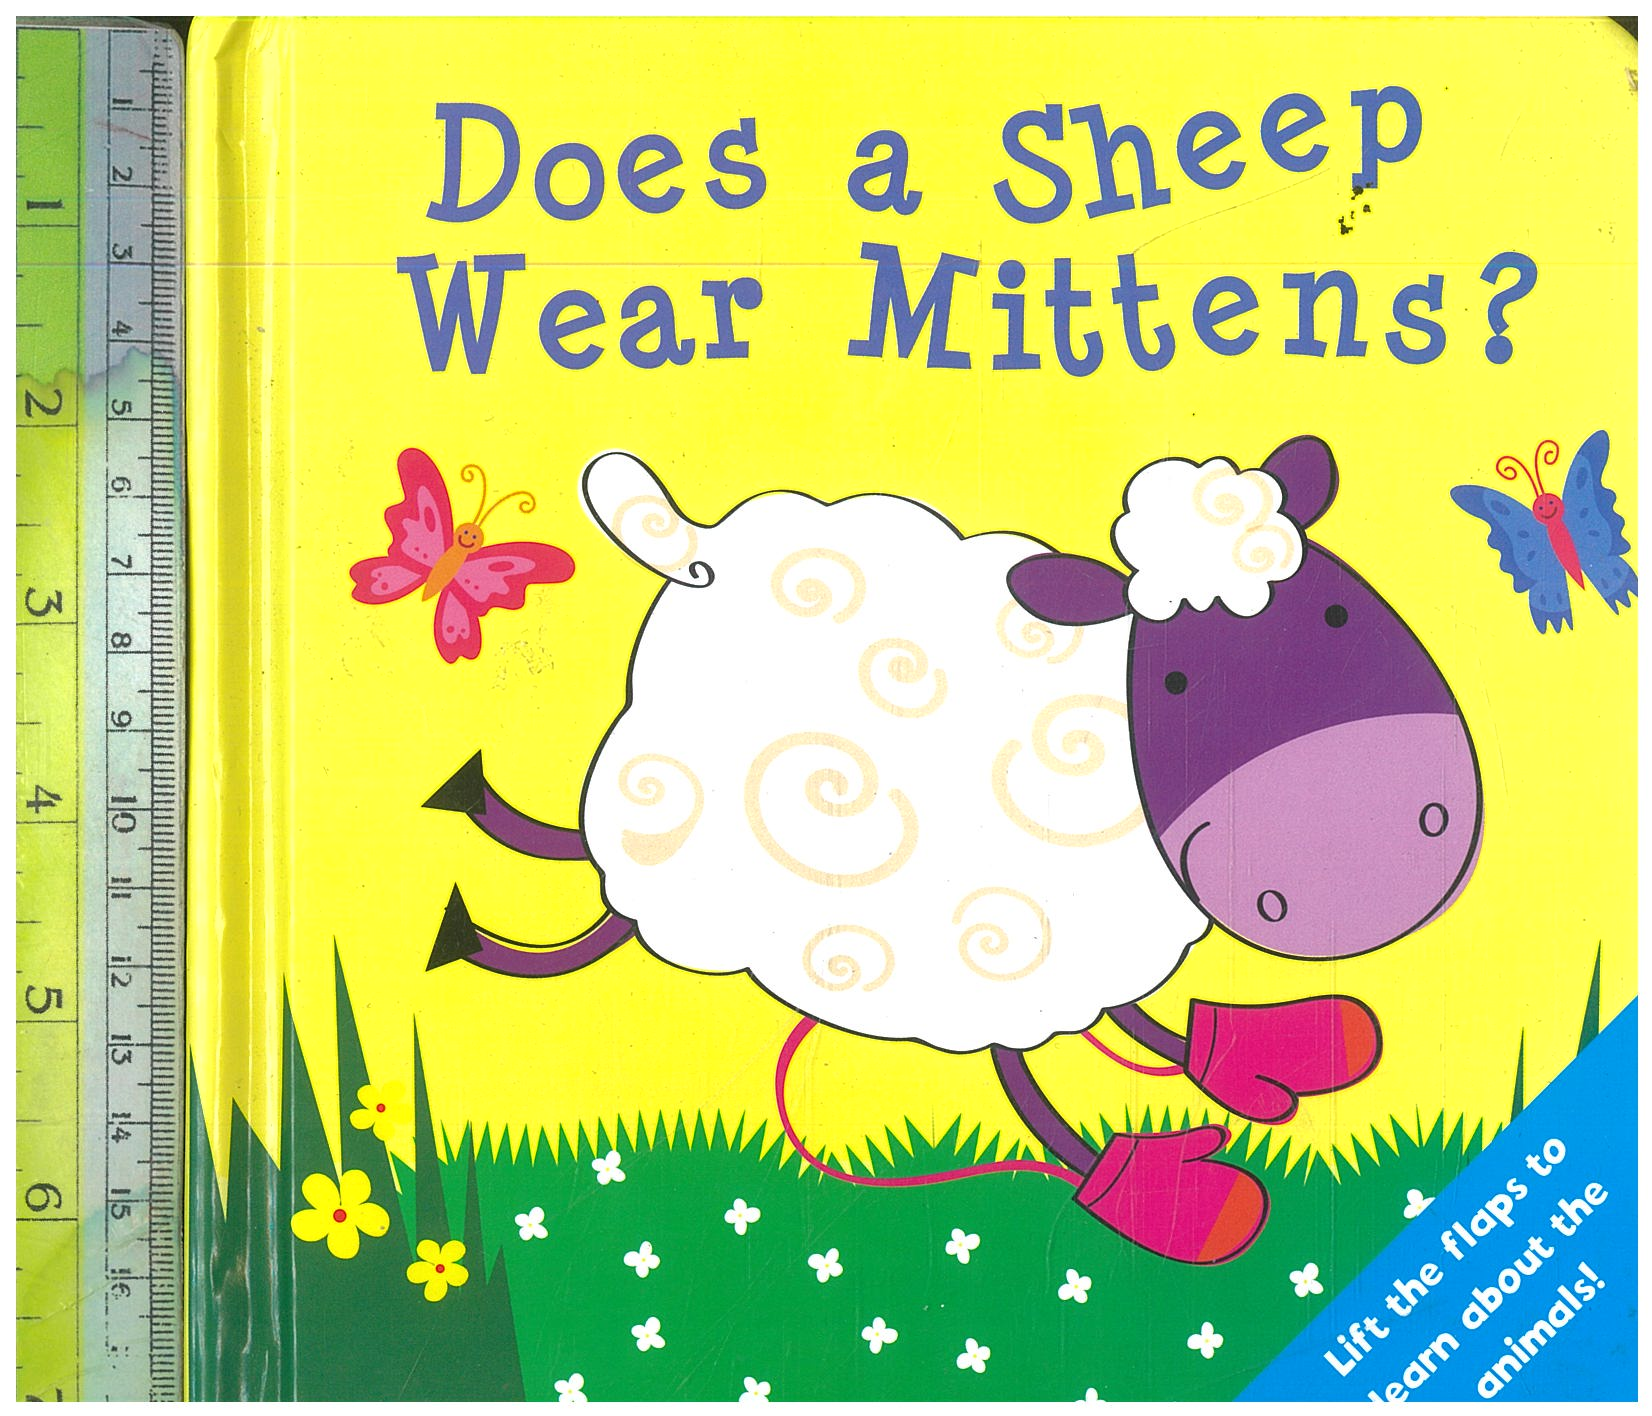 Does a Sheep wear Mittens